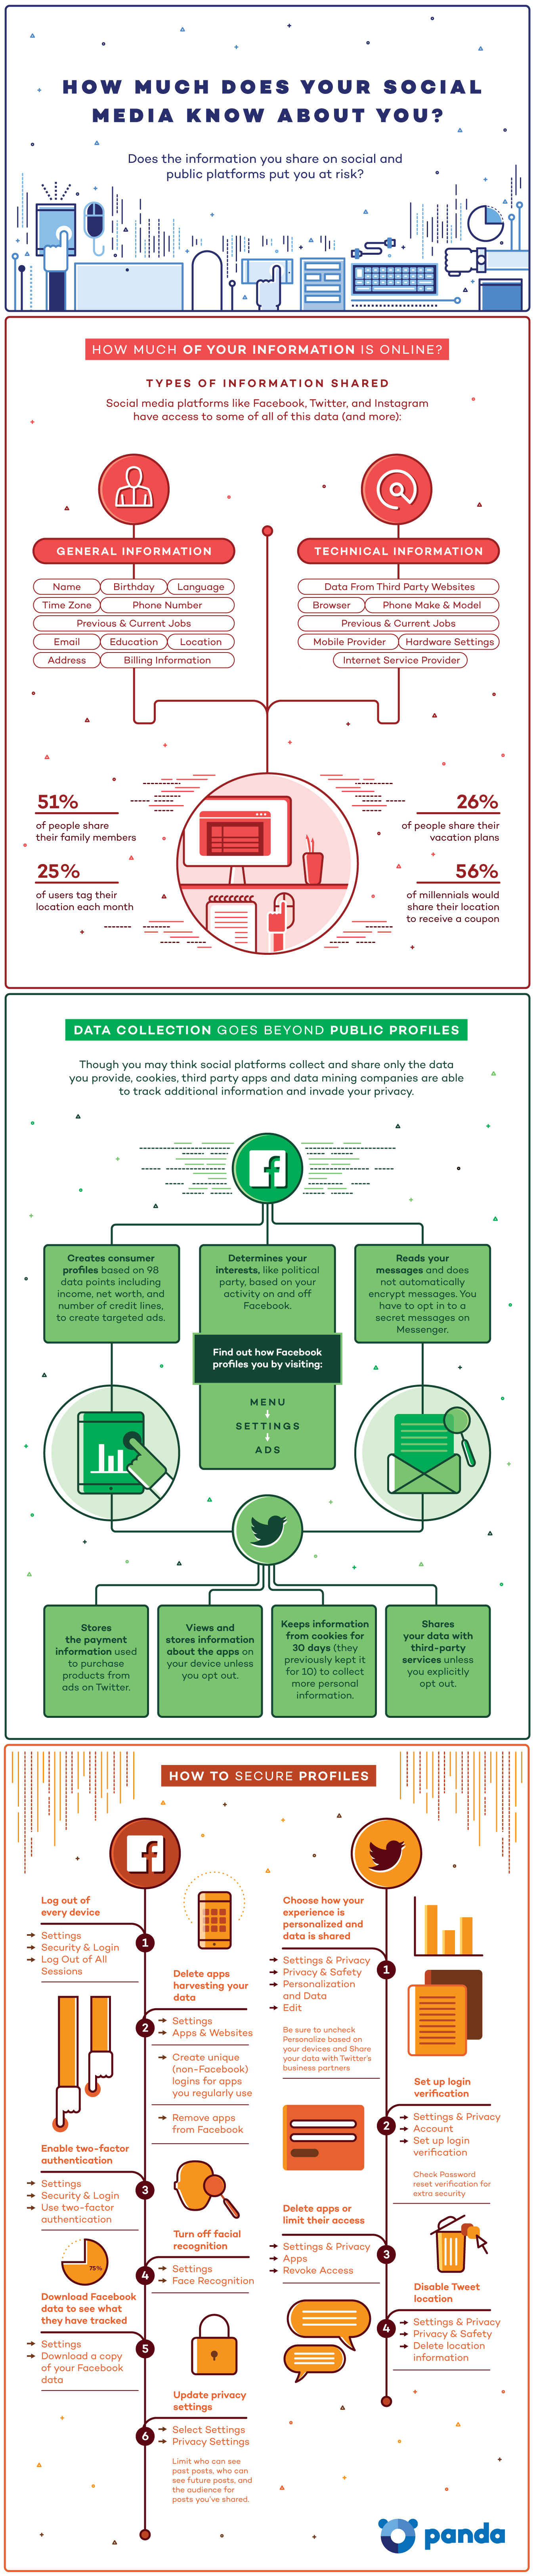 Infographic: Social Media Privacy Settings | RECOIL OFFGRID